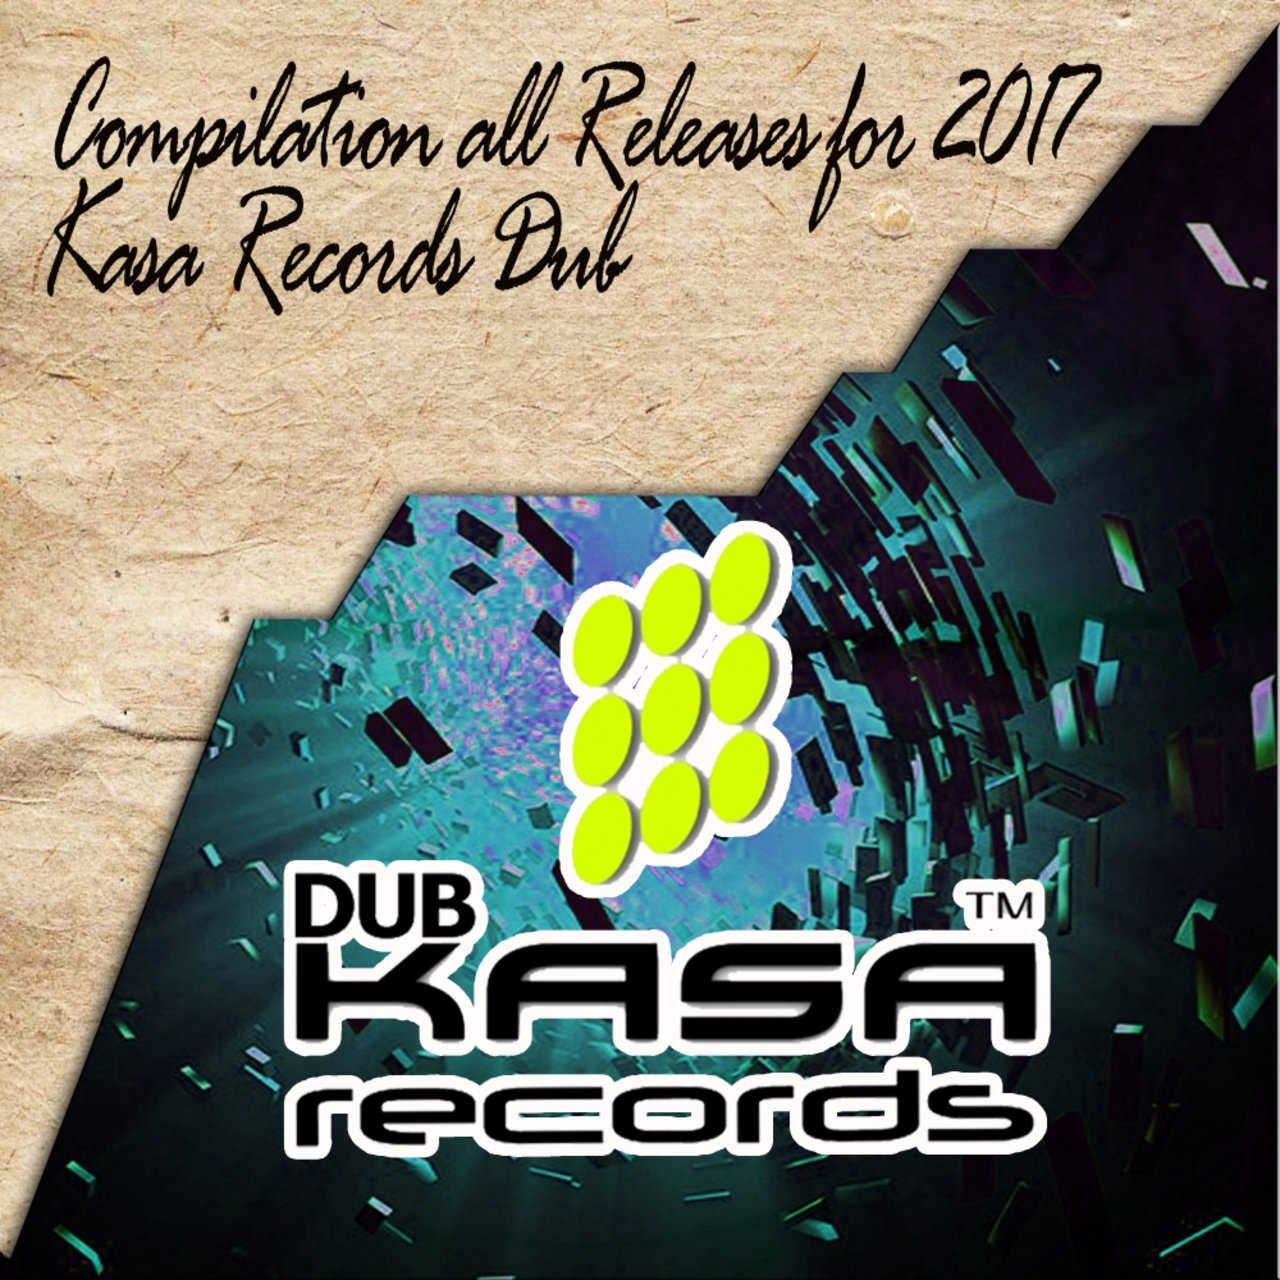 Compilation all Releases for 2017 Kasa Records Dub